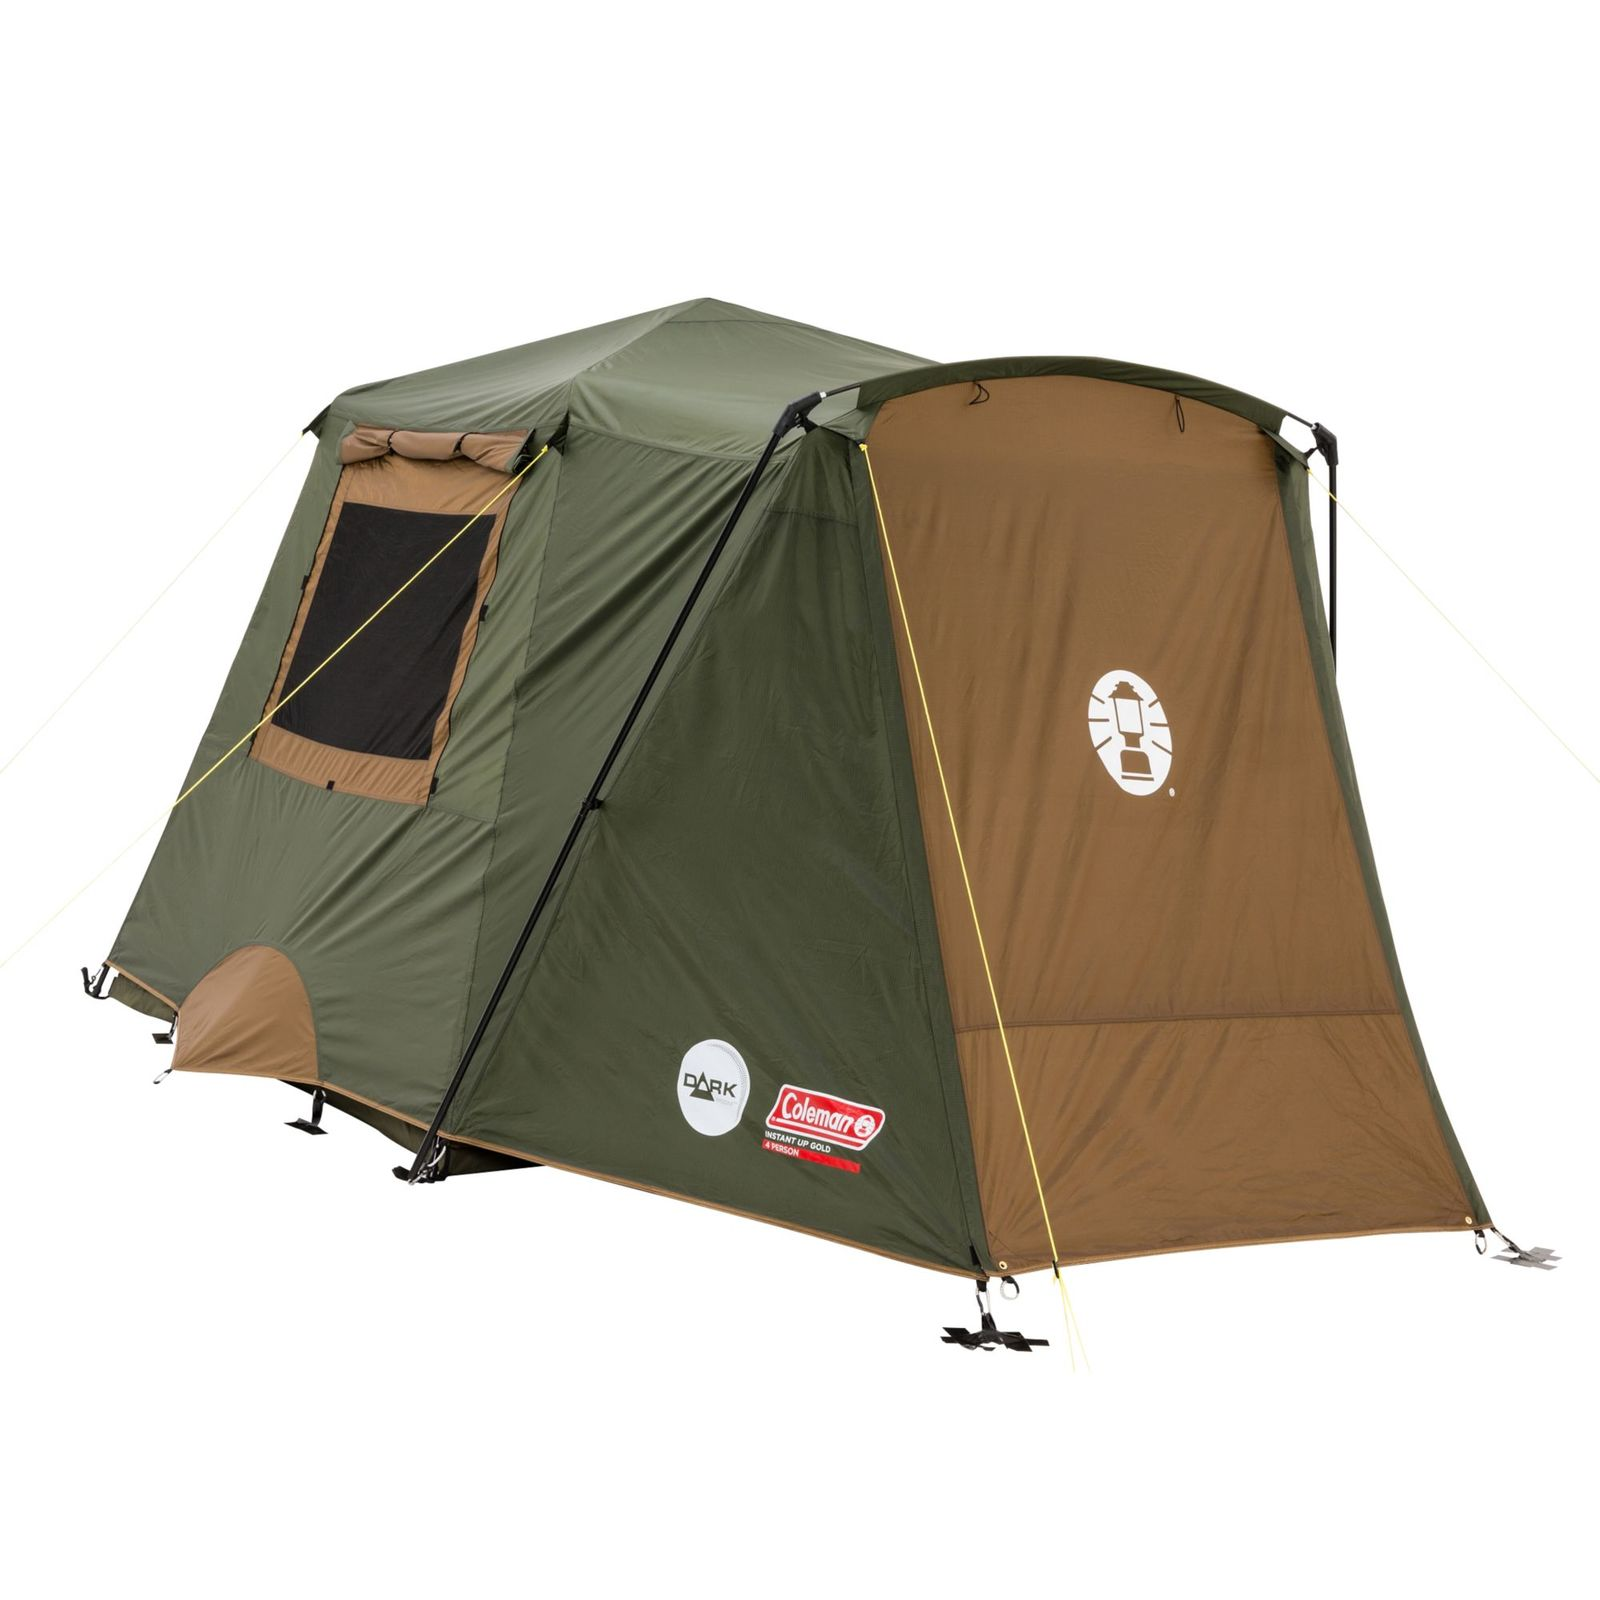 Best 4 Person Tents In Australia For 2019 Outback Review